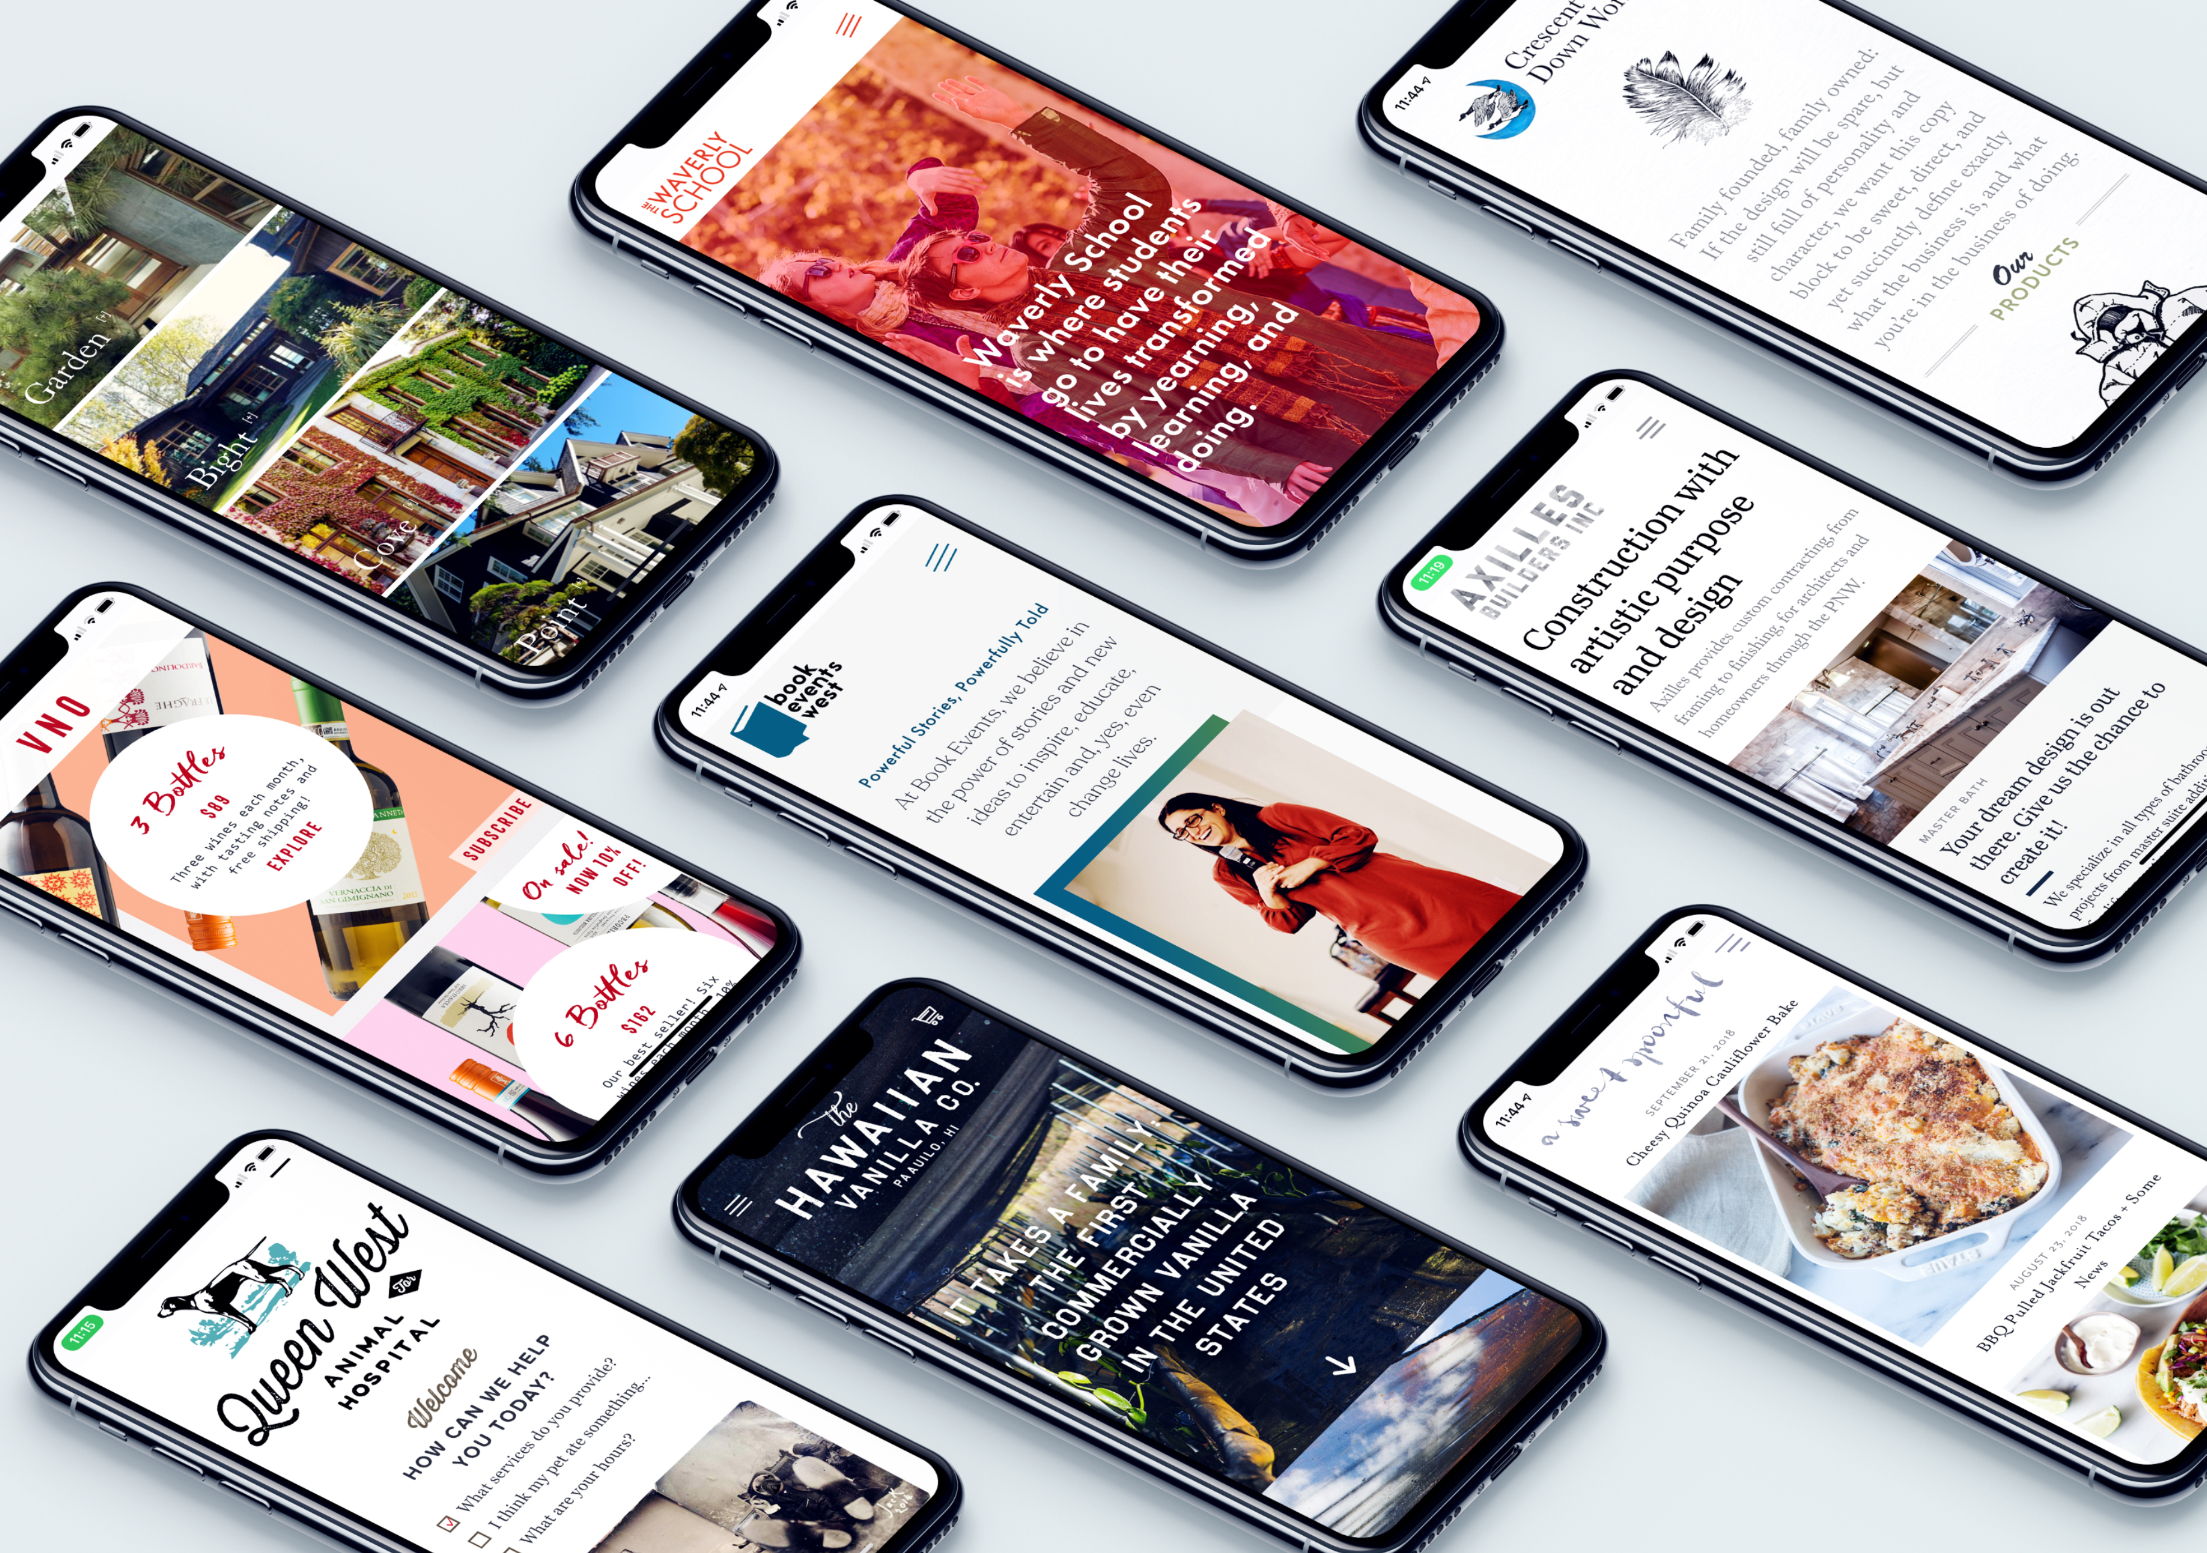 Many website designs displayed on iPhones